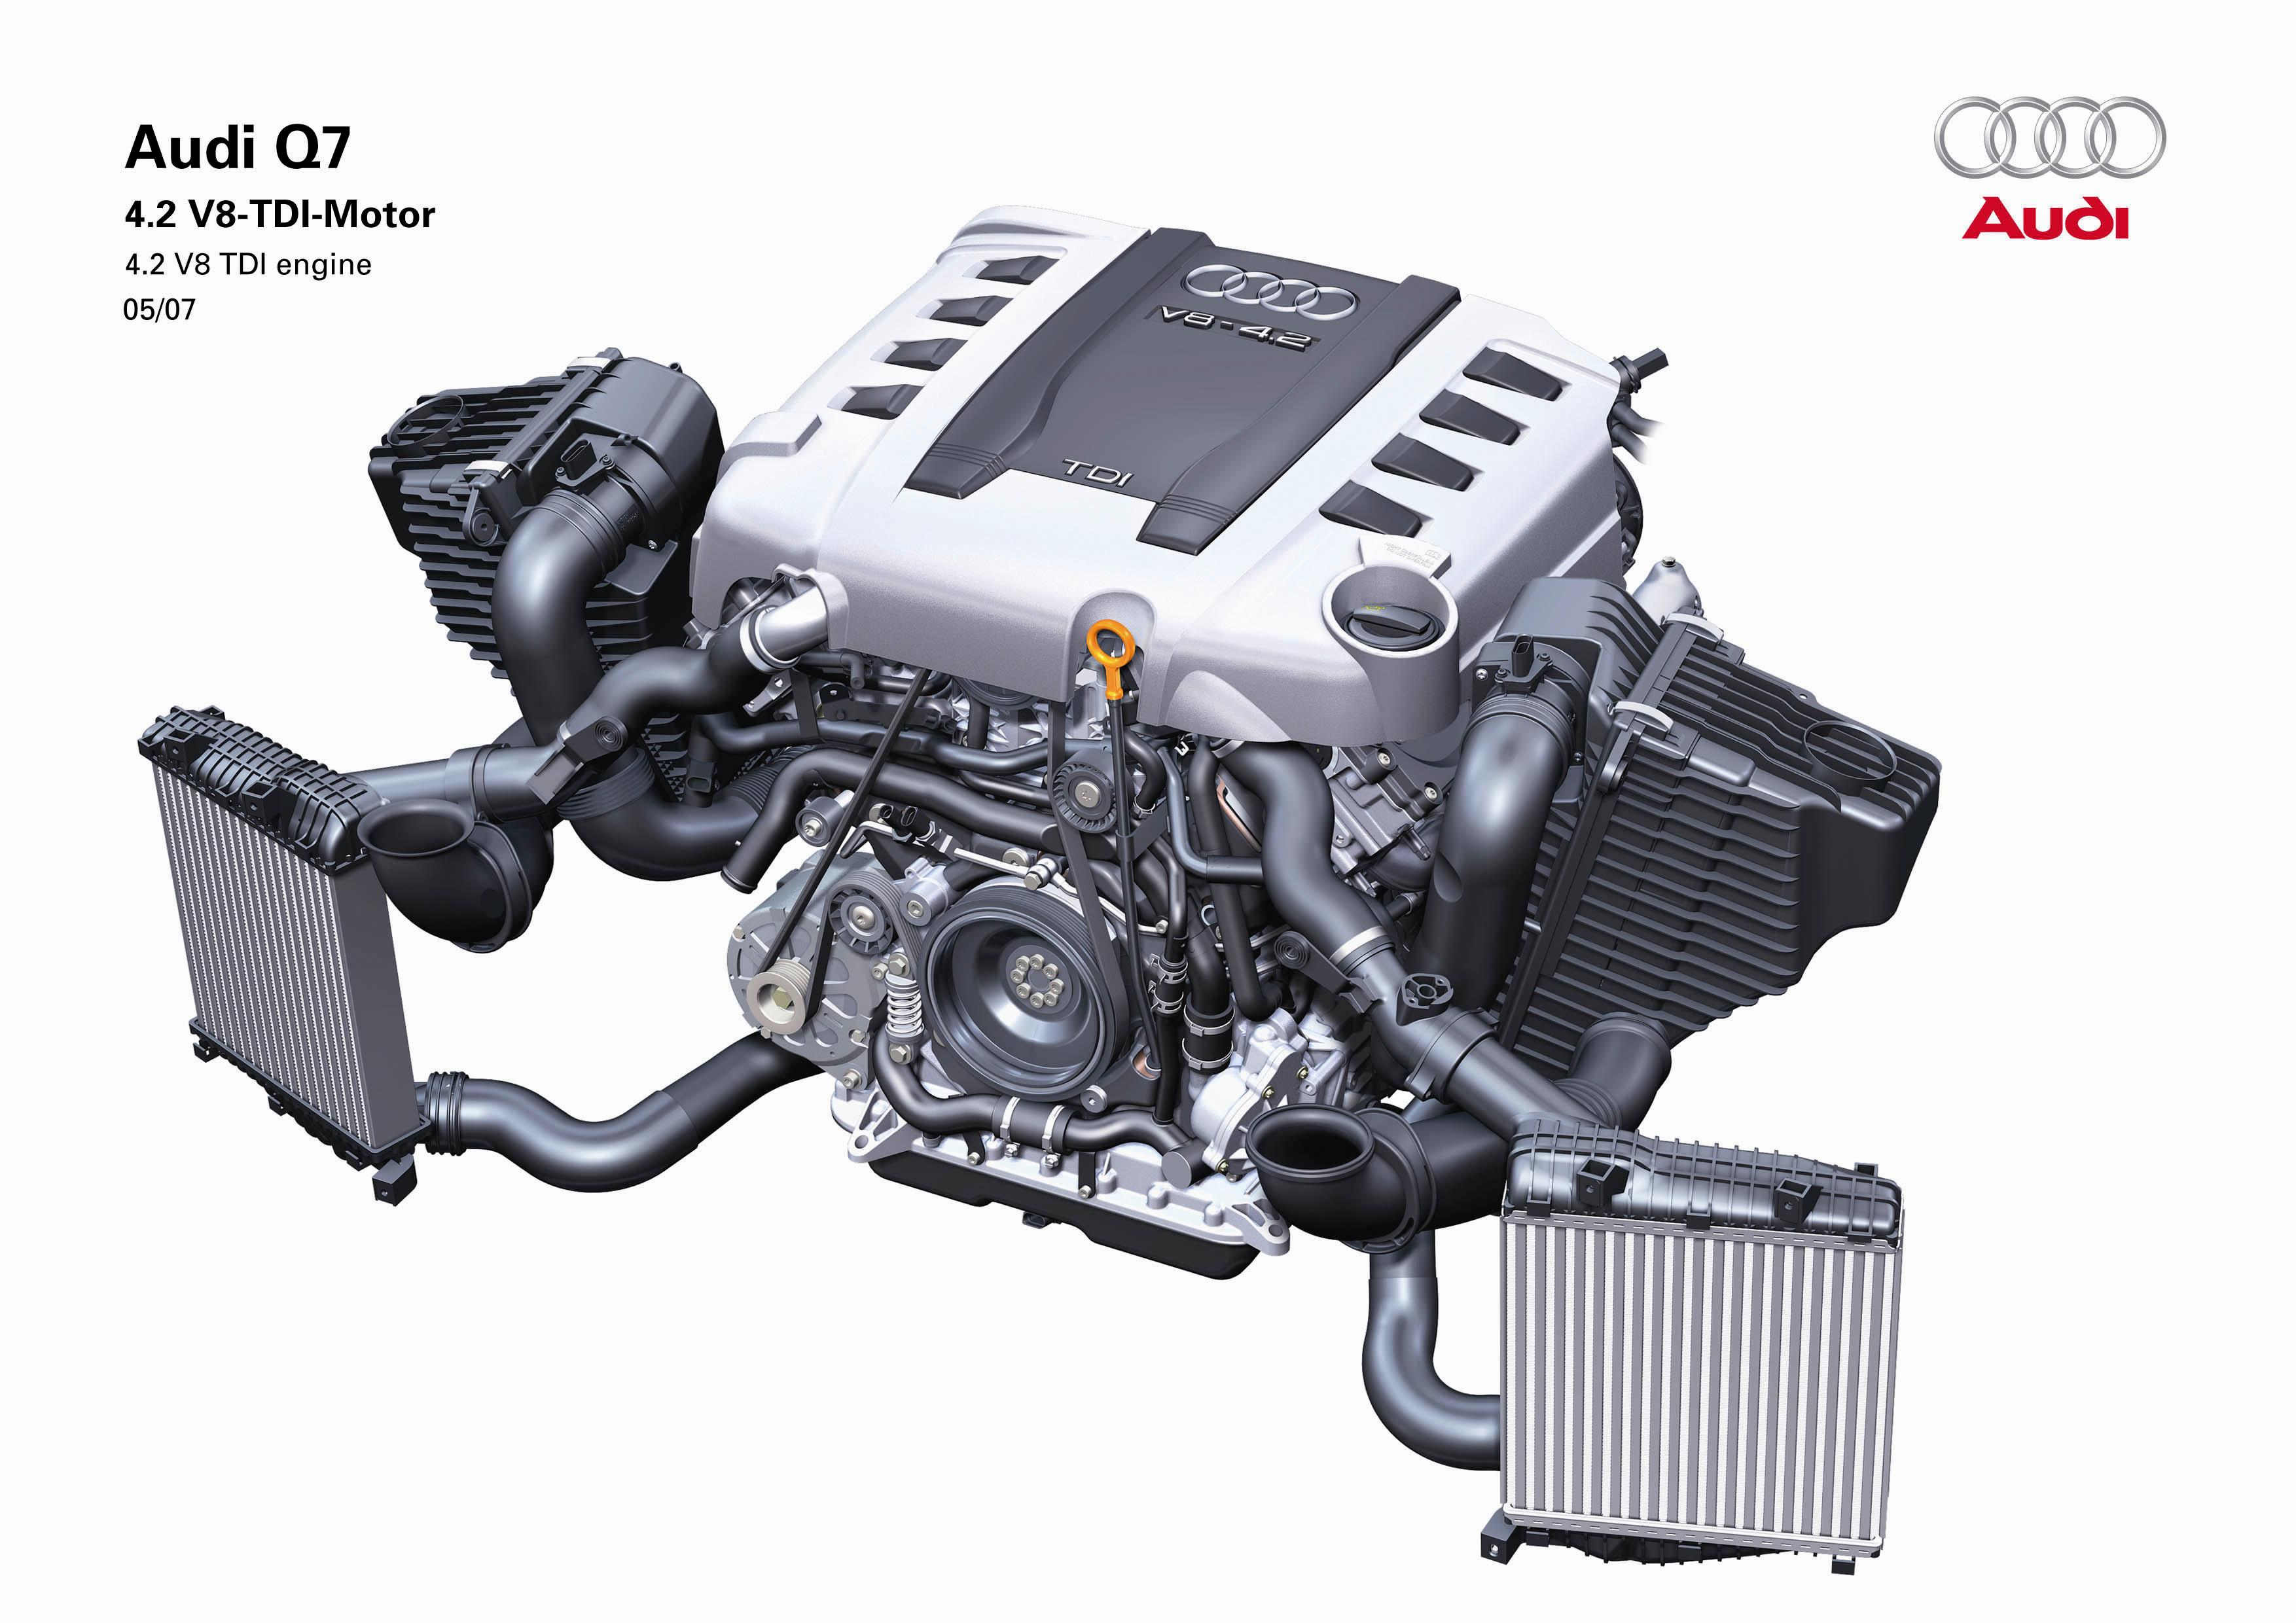 Audi 4 2 V8 Engine Diagram Change Your Idea With Wiring S4 Library Rh Evitta De